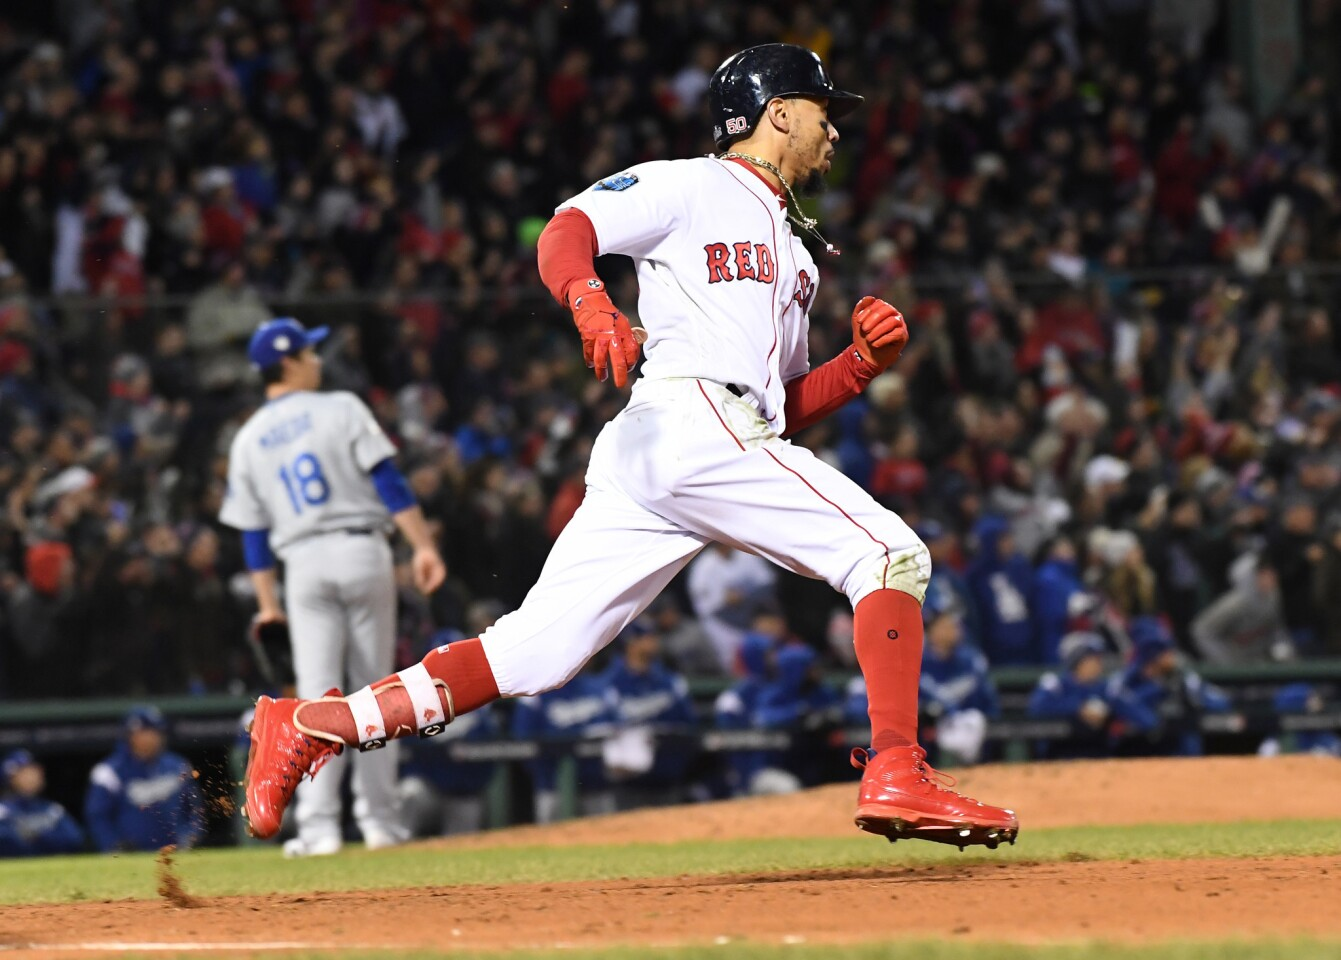 Red Sox's Mookie Betts scores a run in the fifth inning of game two of the World Series against the Dodgers at Fenway Park.